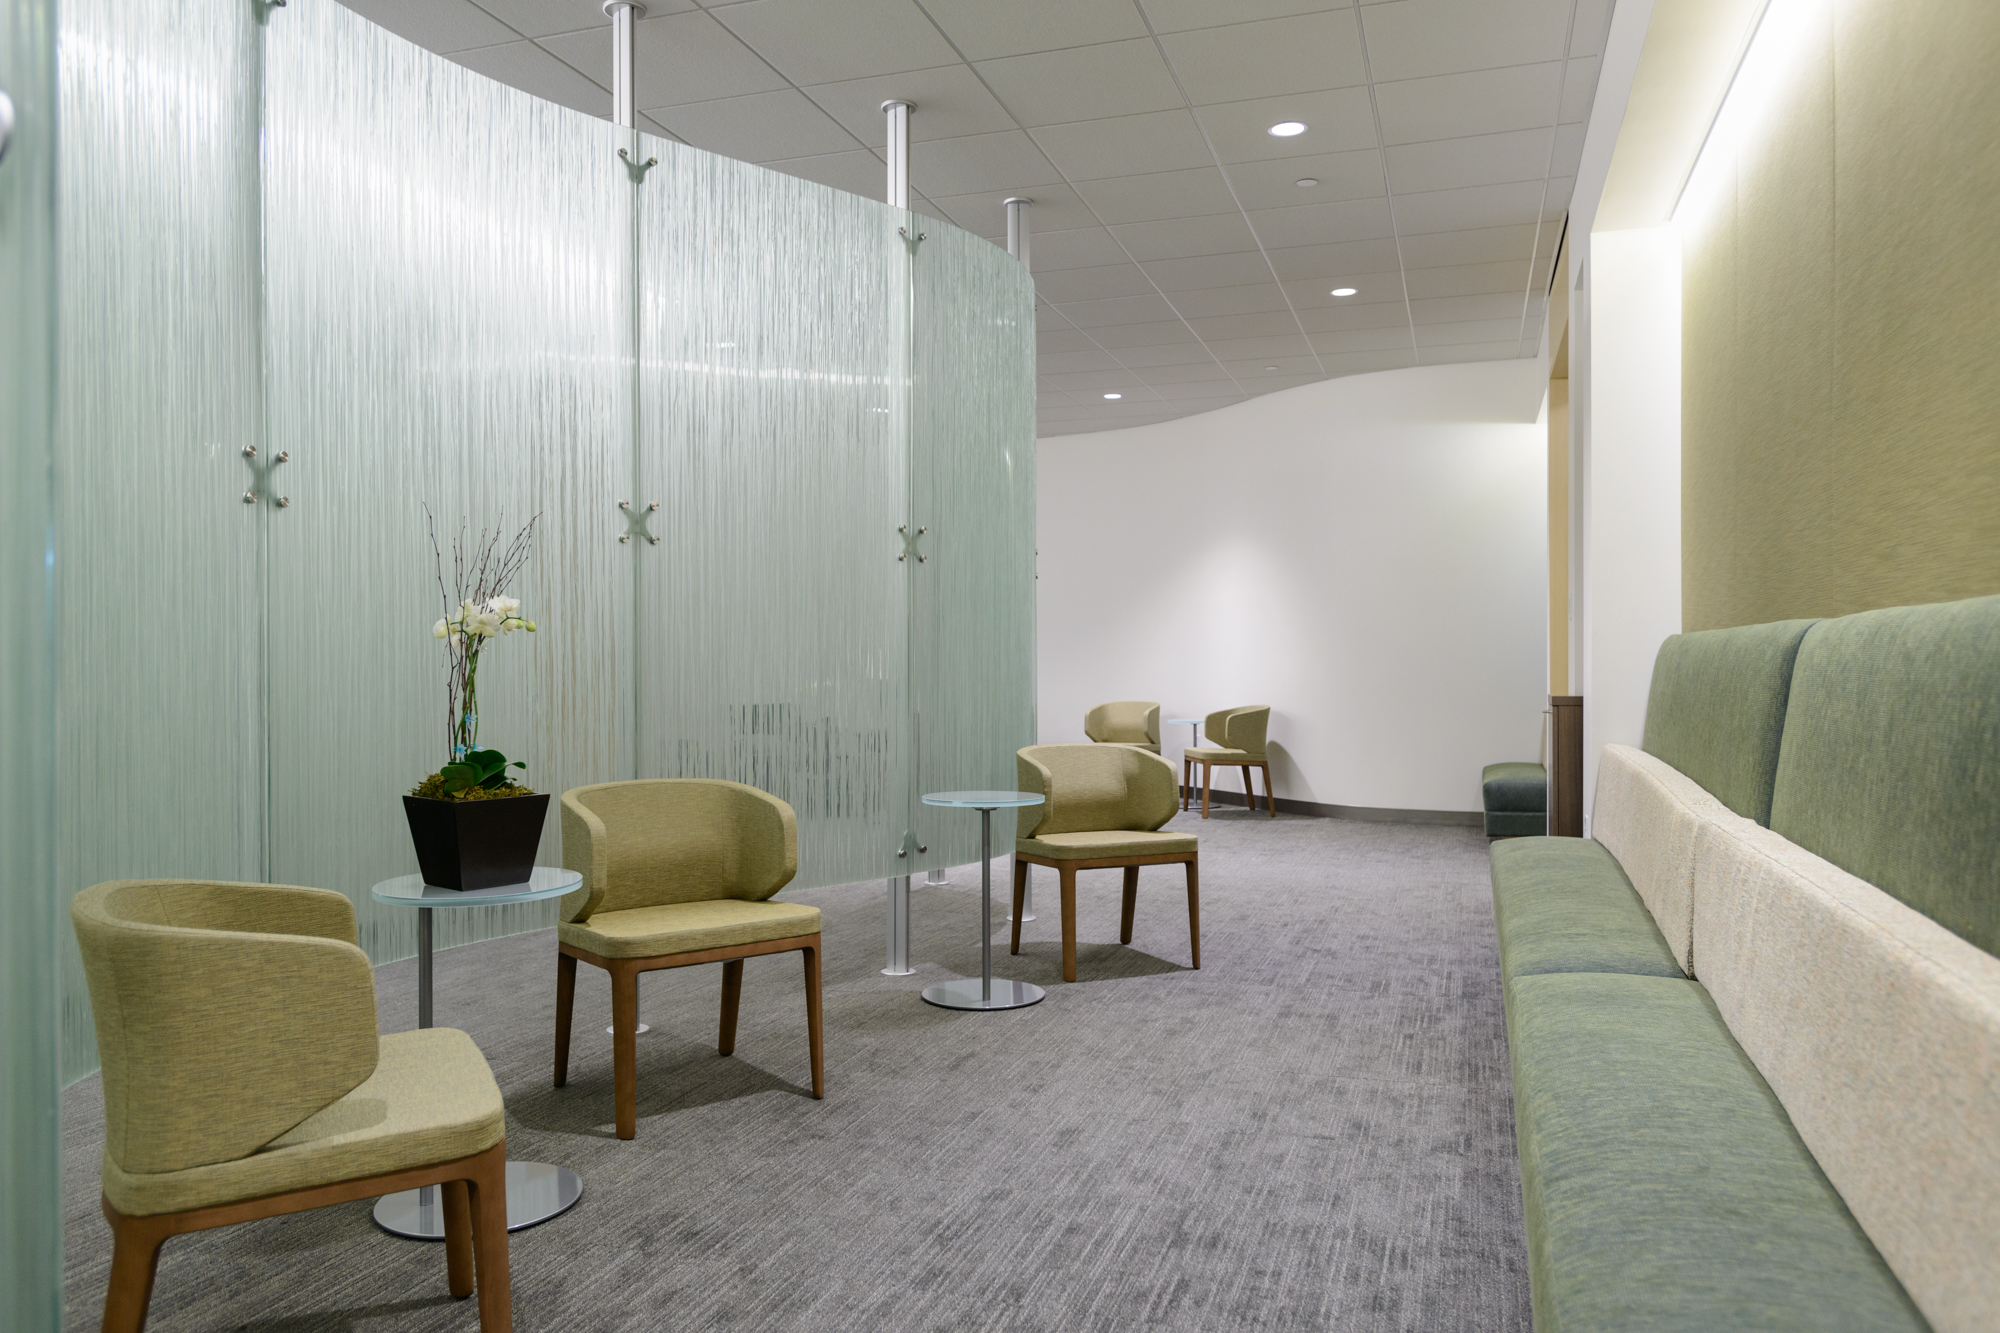 Image of UCSF REI Clinic